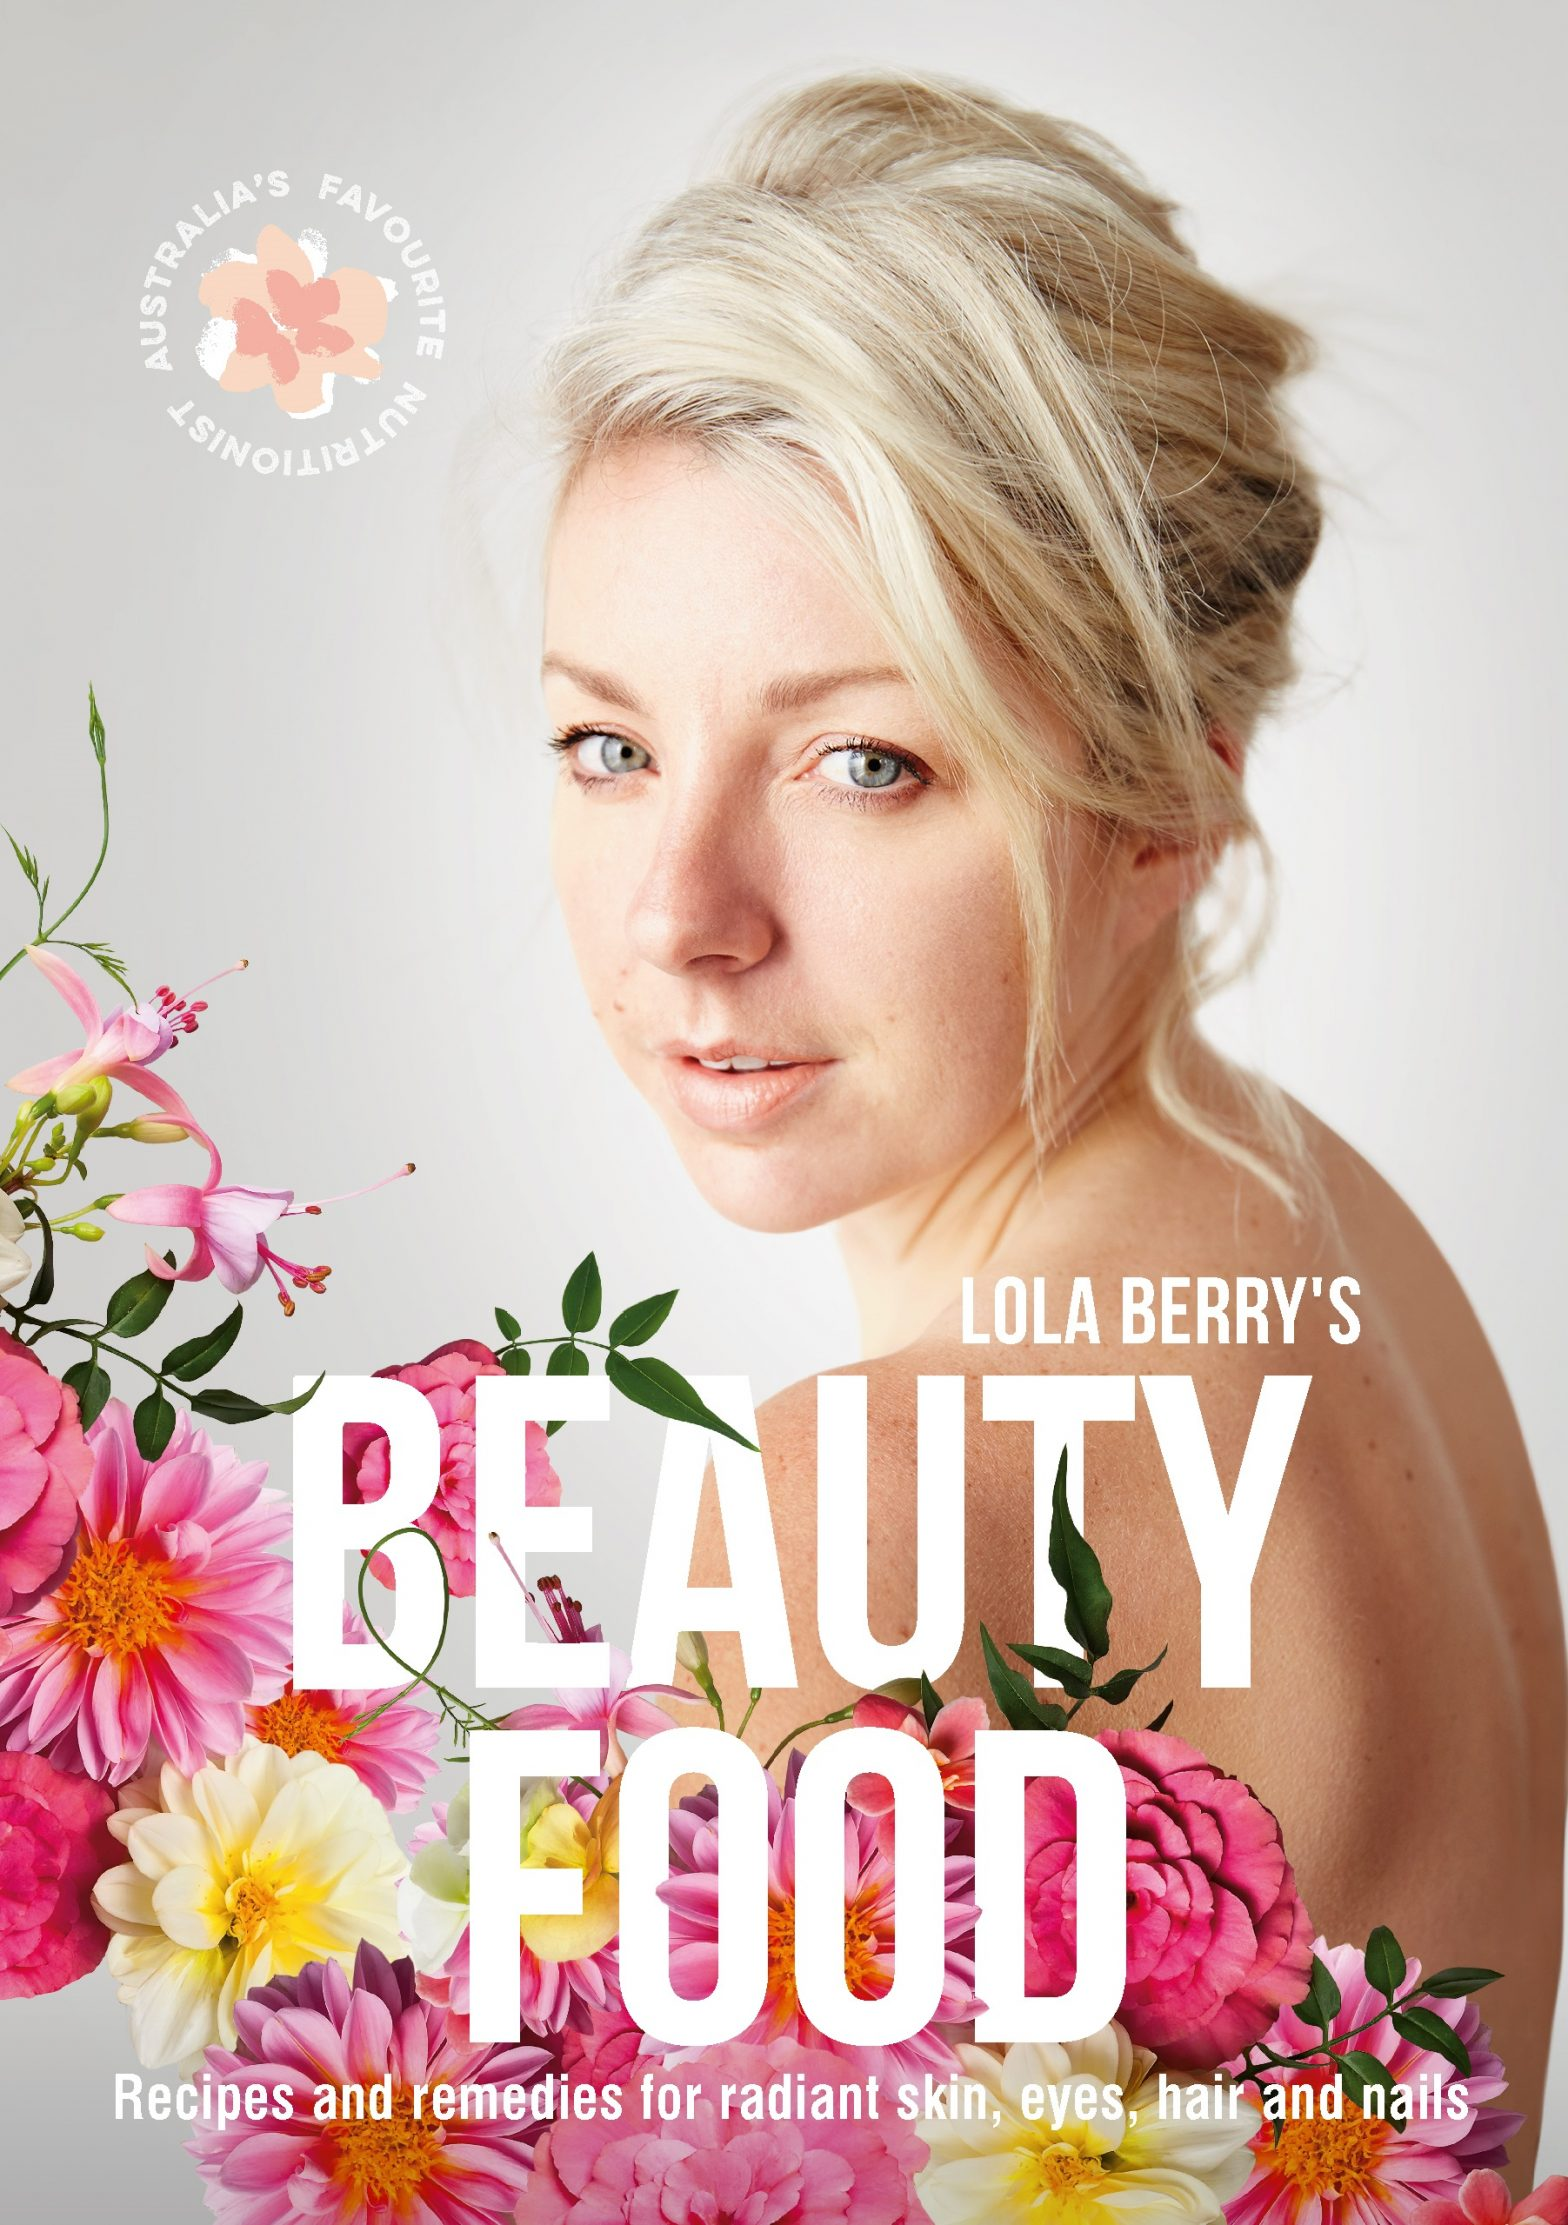 'Lola Berry's Beauty Food'